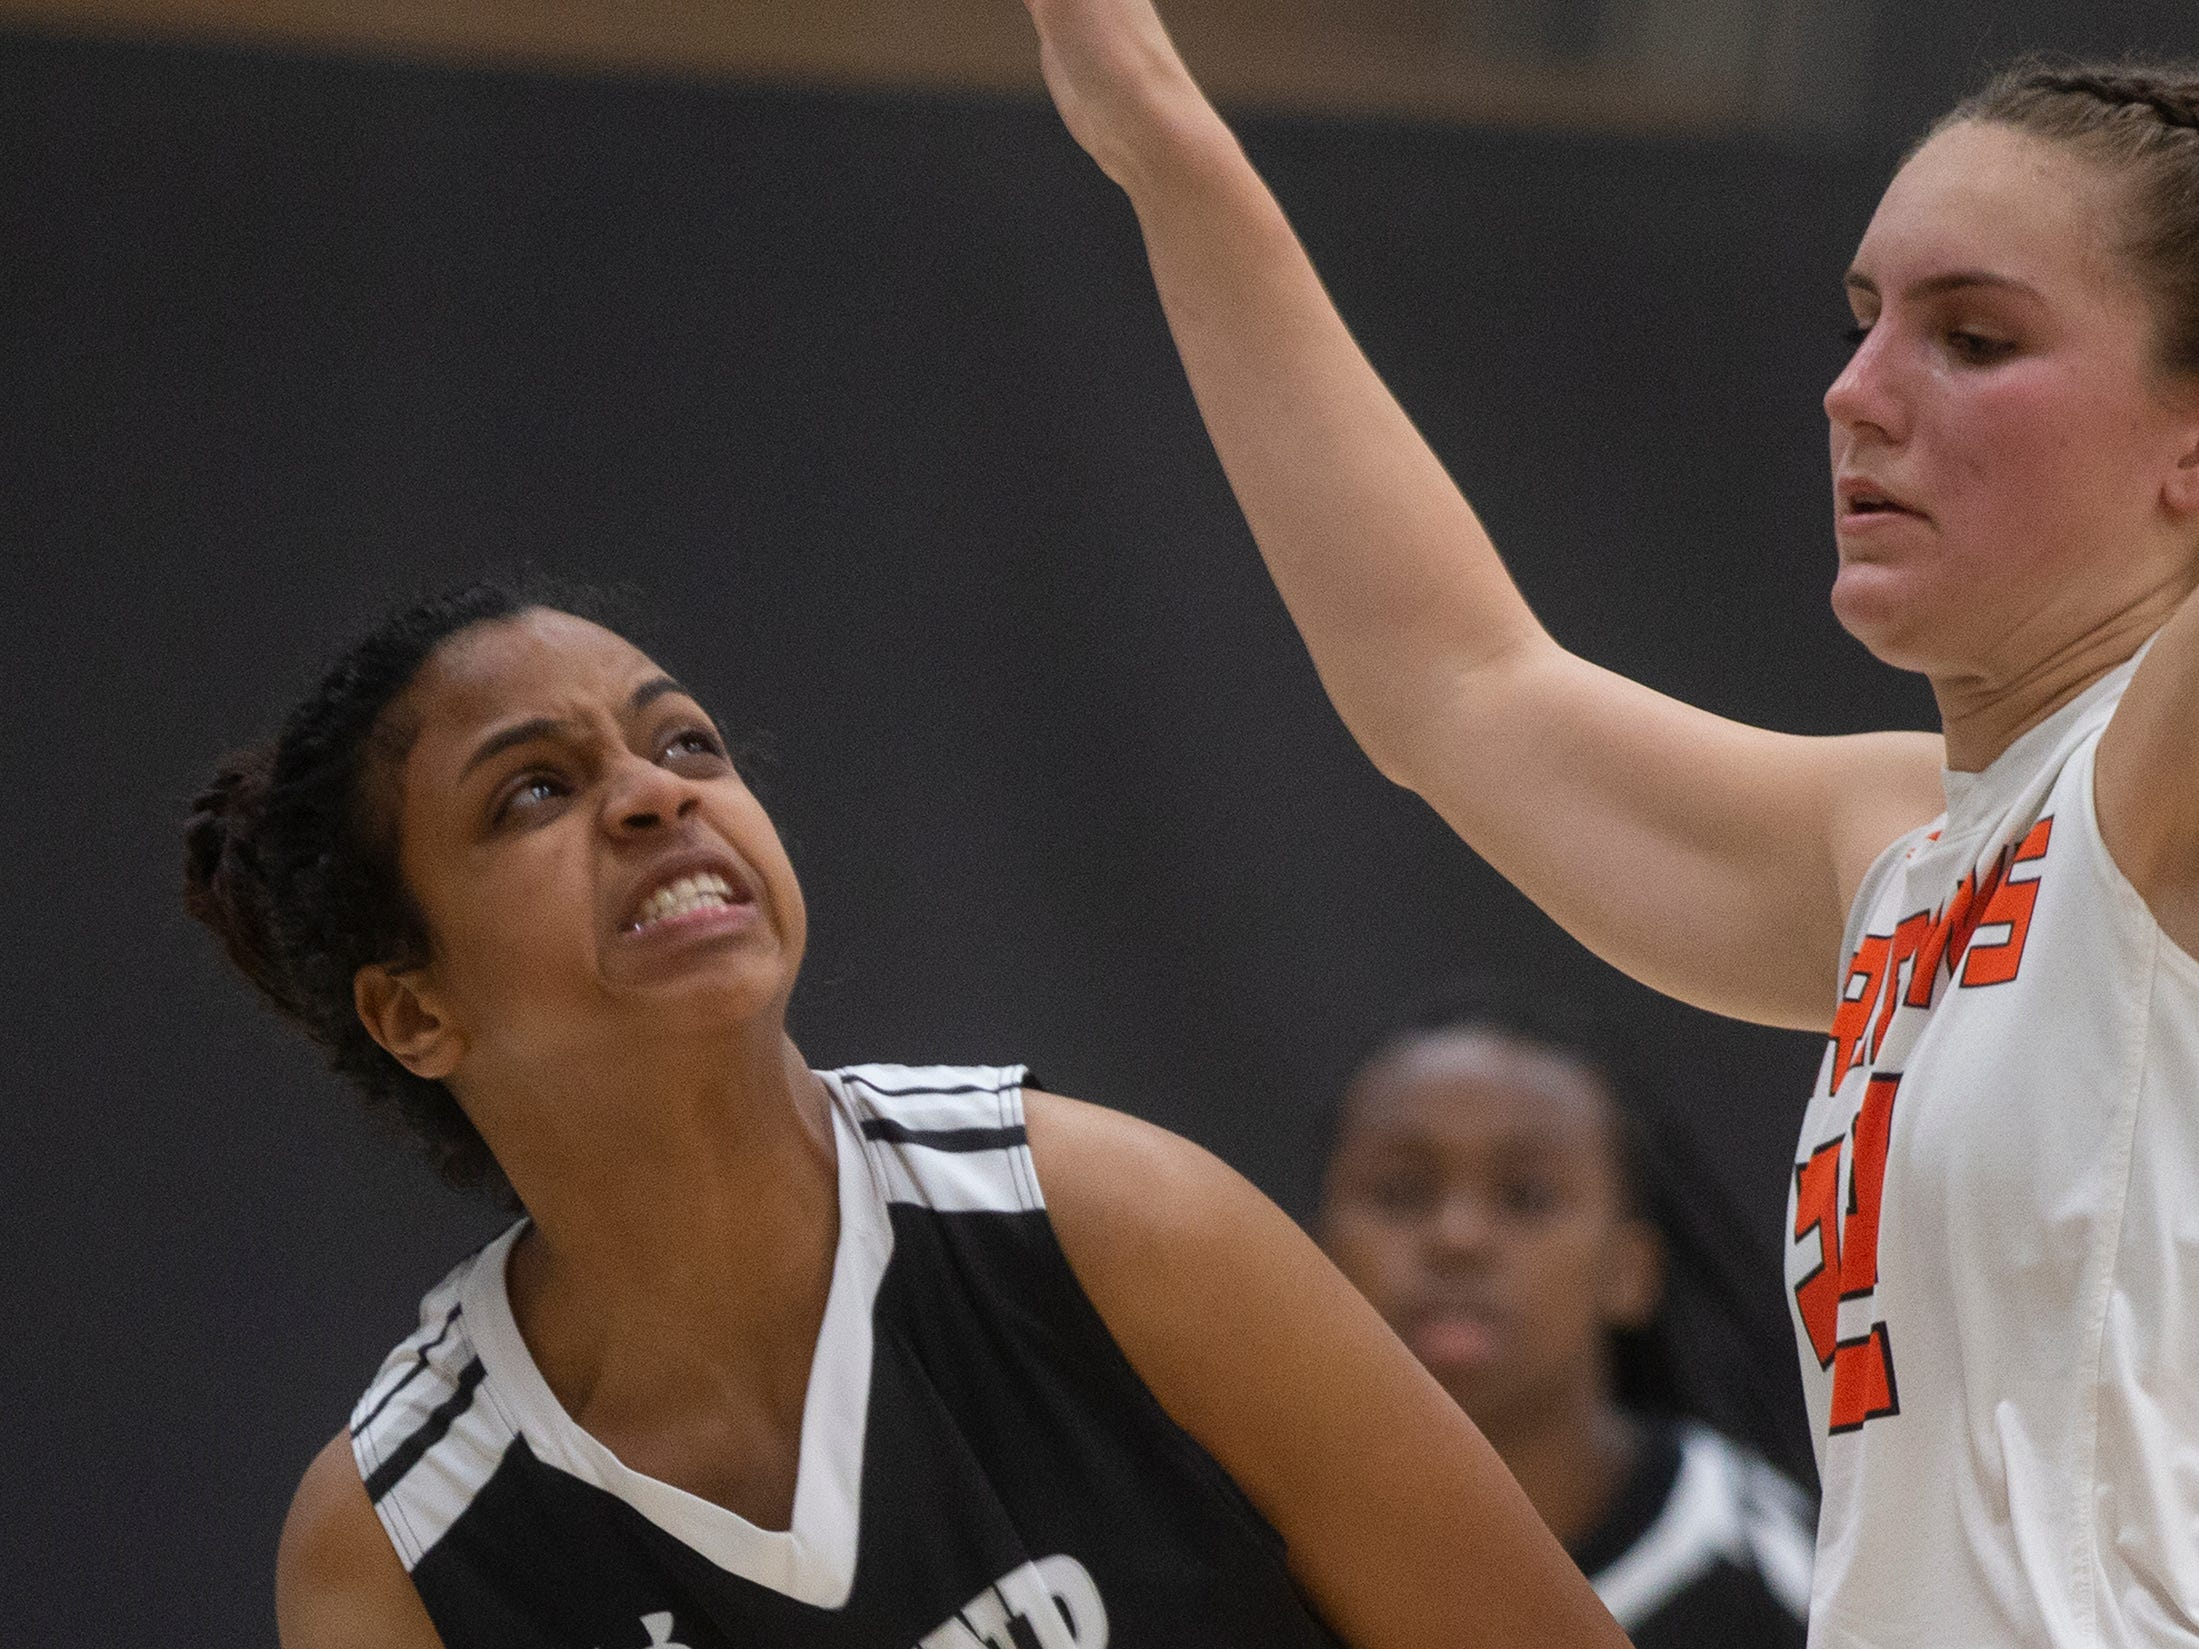 Mariners High School's Alana Lozada holds on the ball while defended by Lely High School's Katie Miller, Thursday, Feb. 6, 2019, at Lely High School.